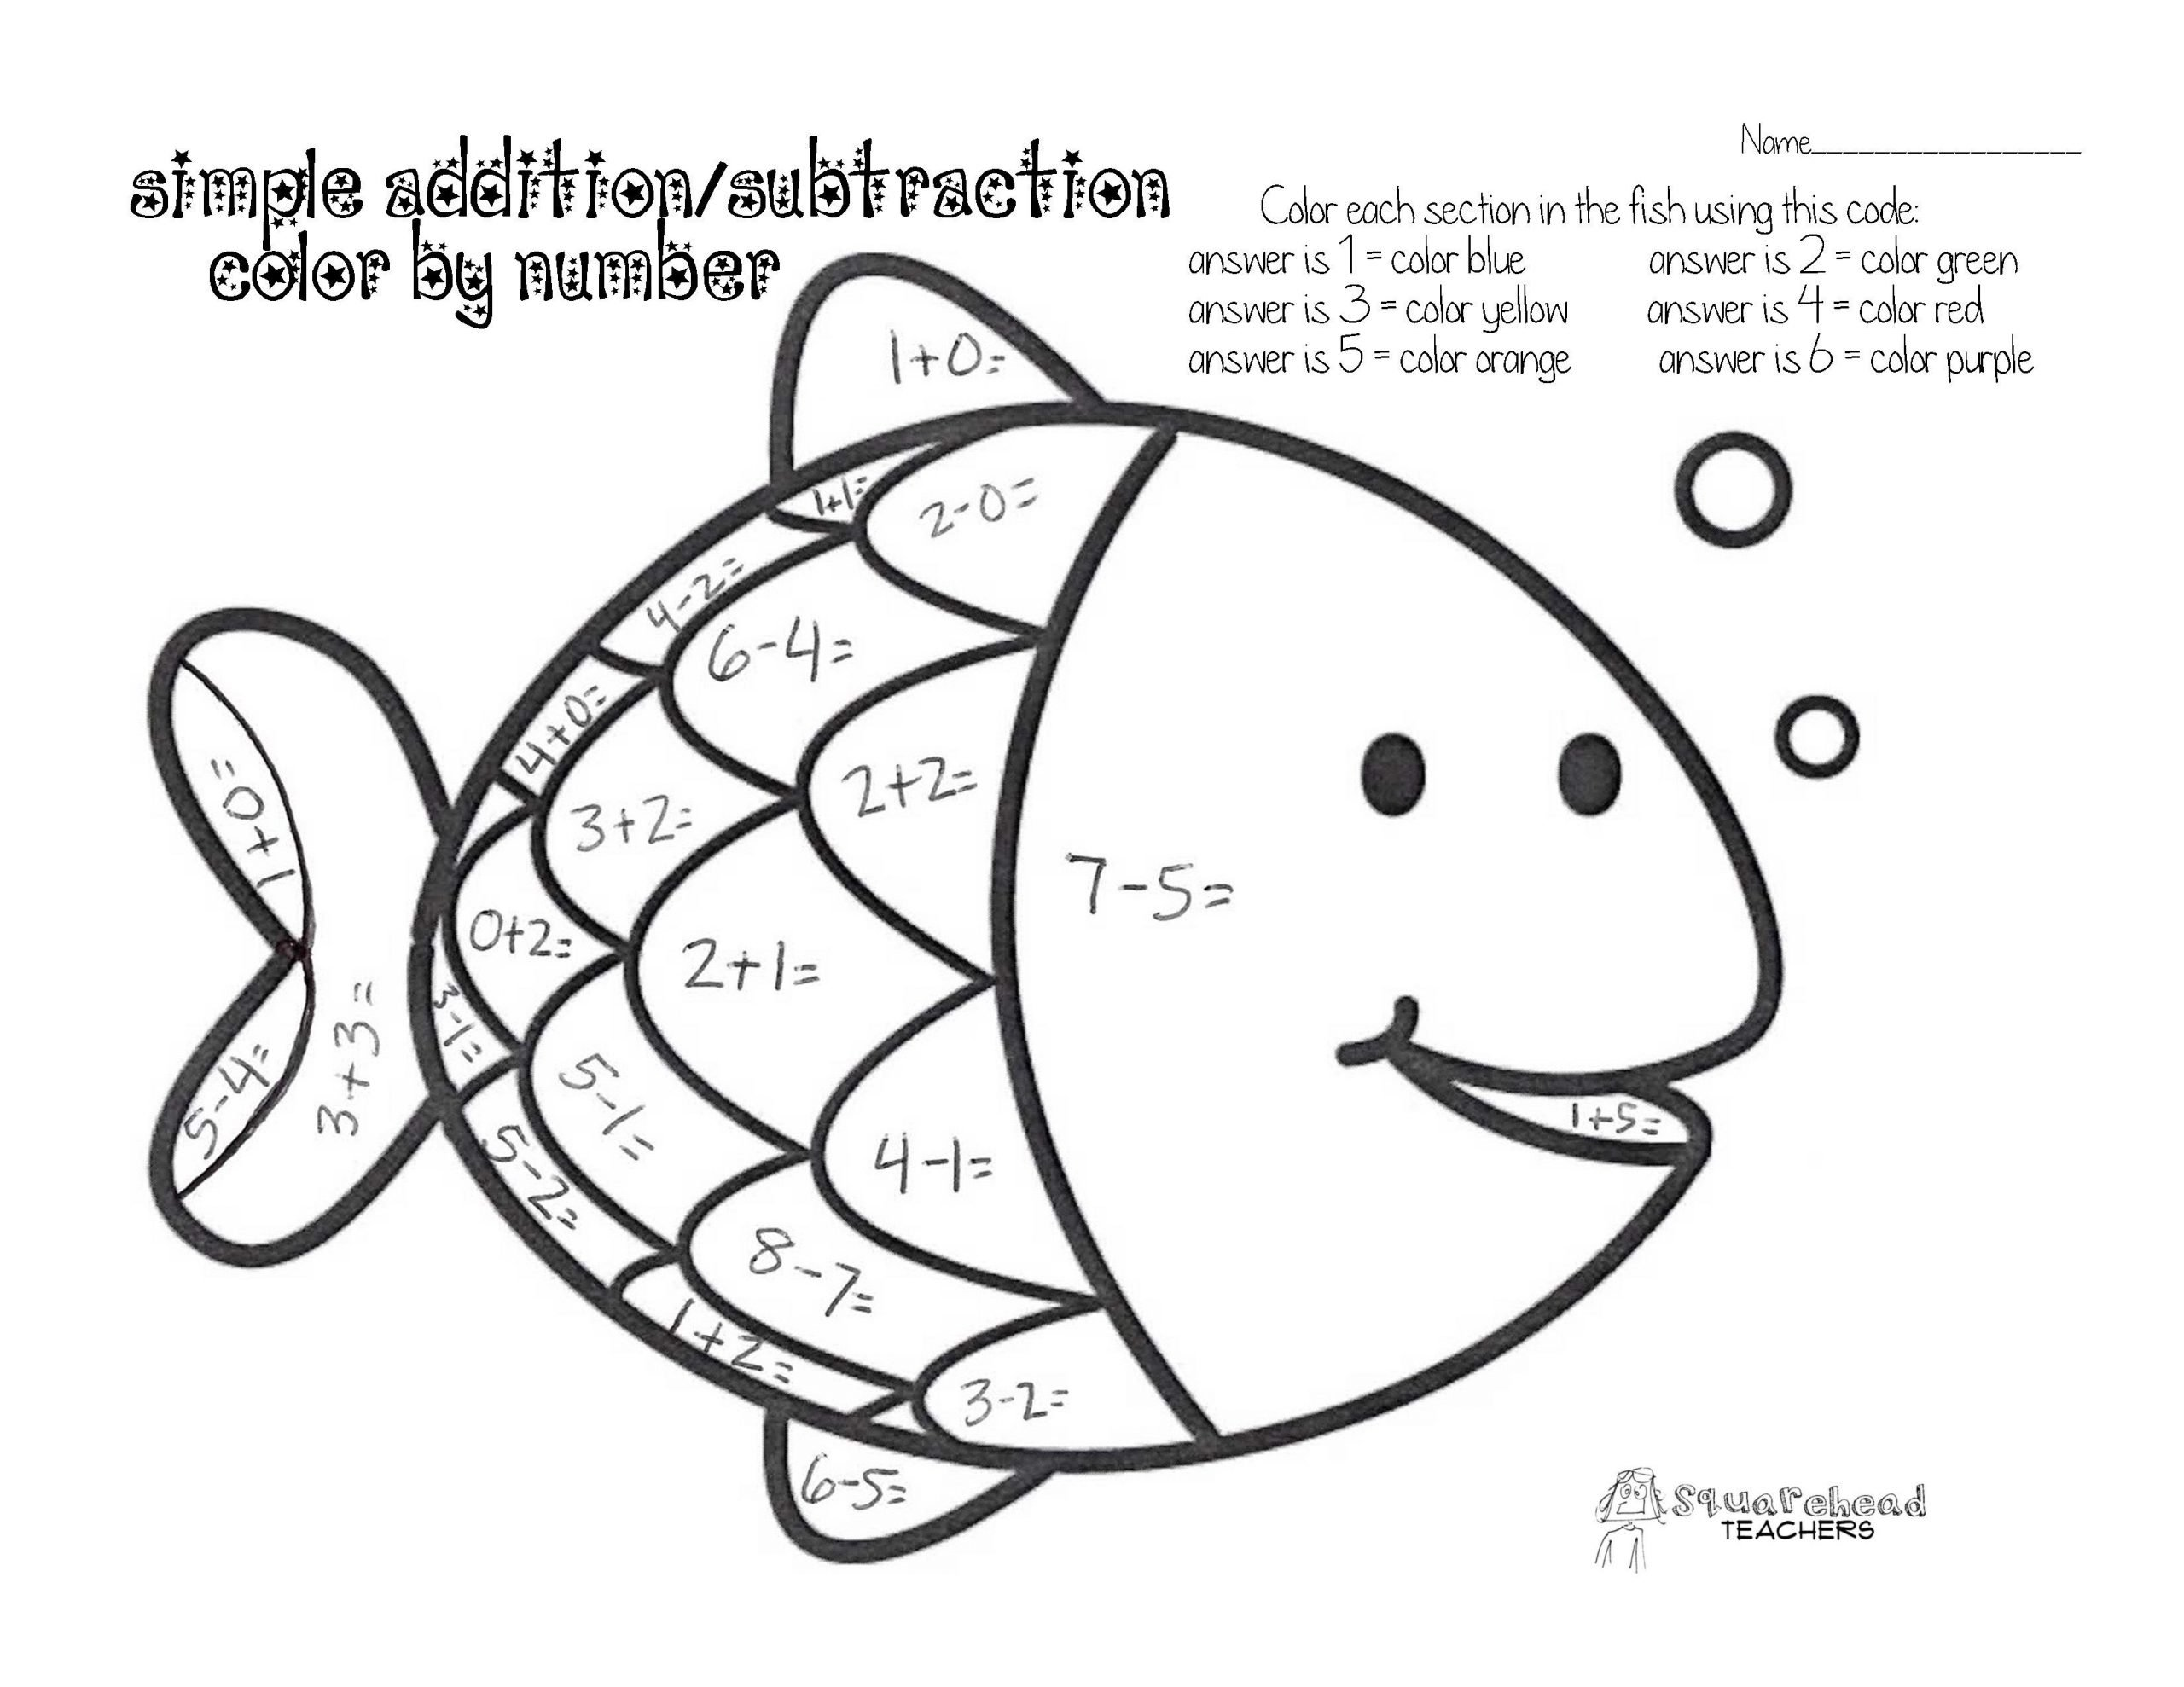 Rainbow Fish Printable Worksheets Color by Number with An Addition Subtraction Twist